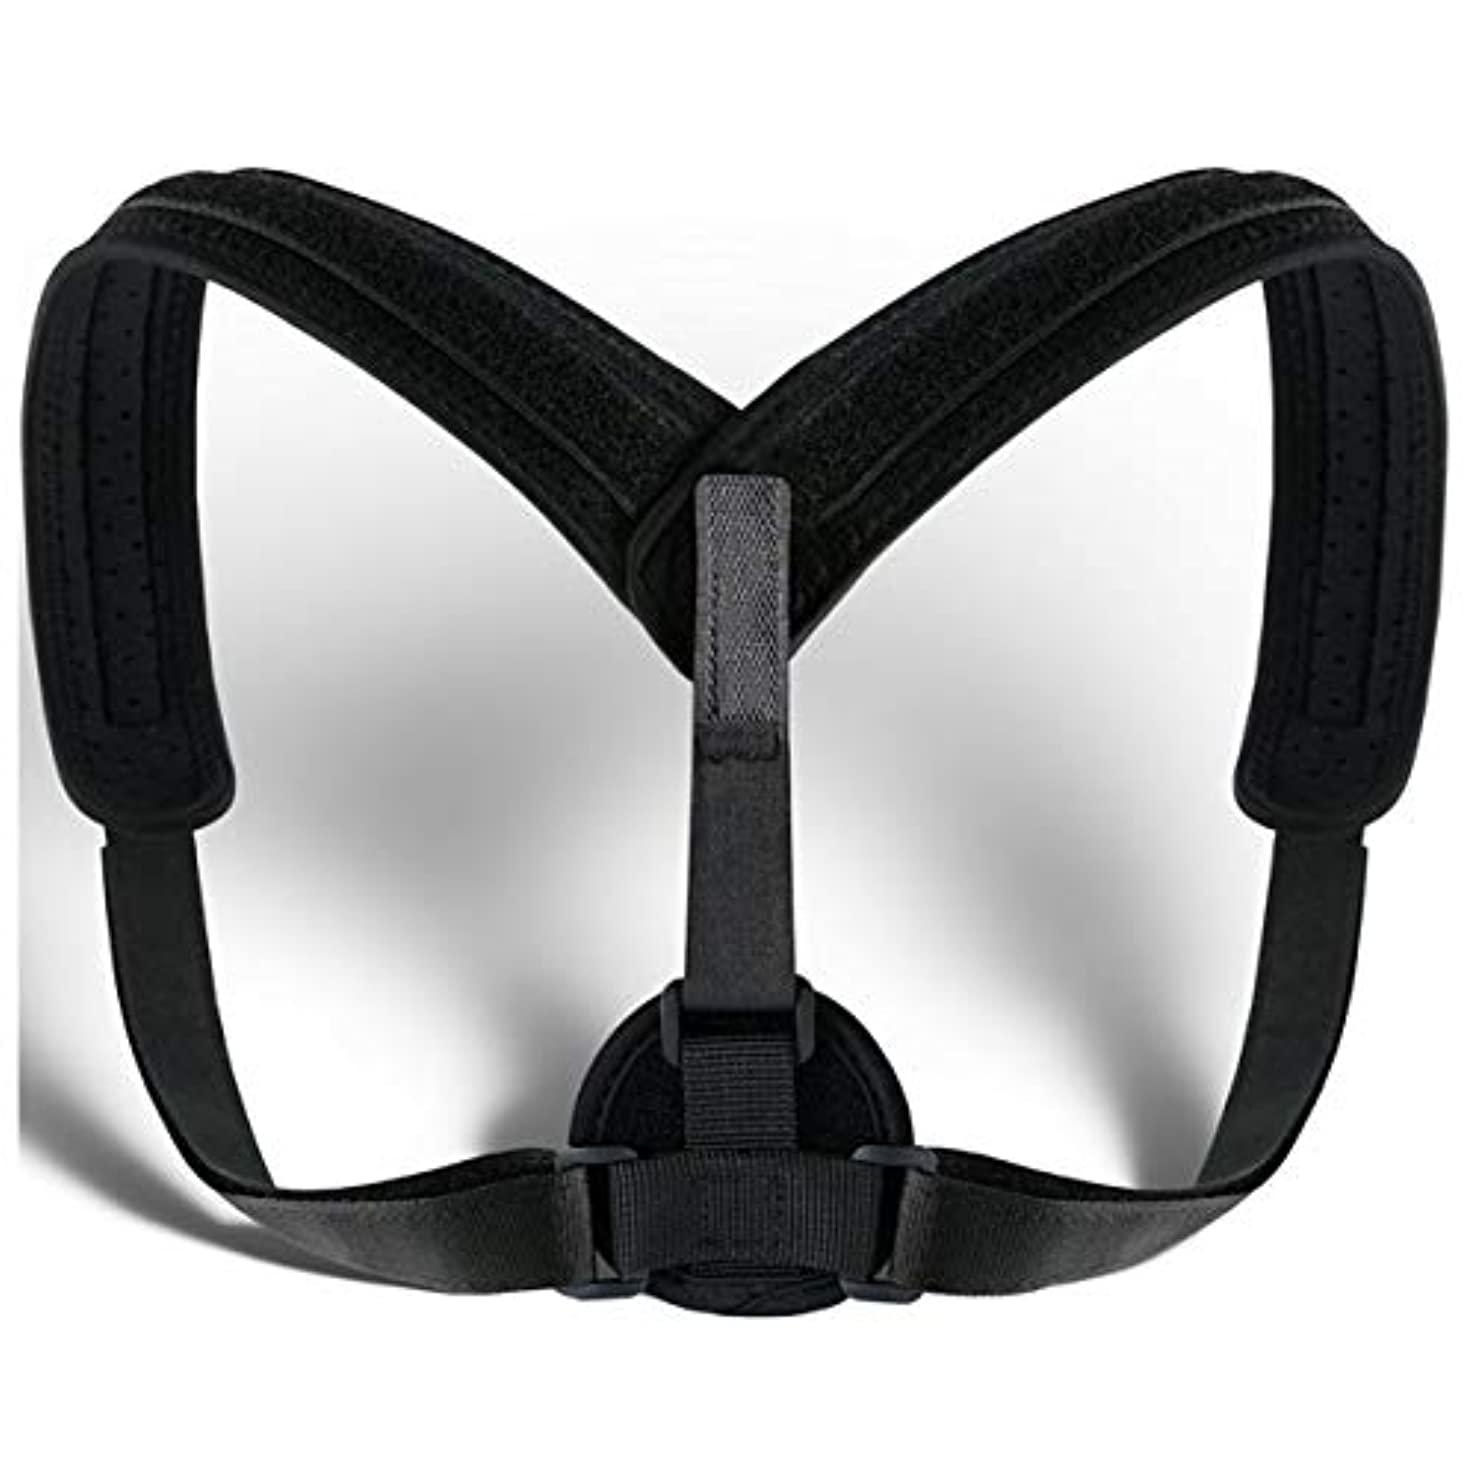 関係ない出しますレルムUnisex Posture Corrector Lumbar Lower Back Support Shoulder Brace Pain Relief AU Back Posture Corrector